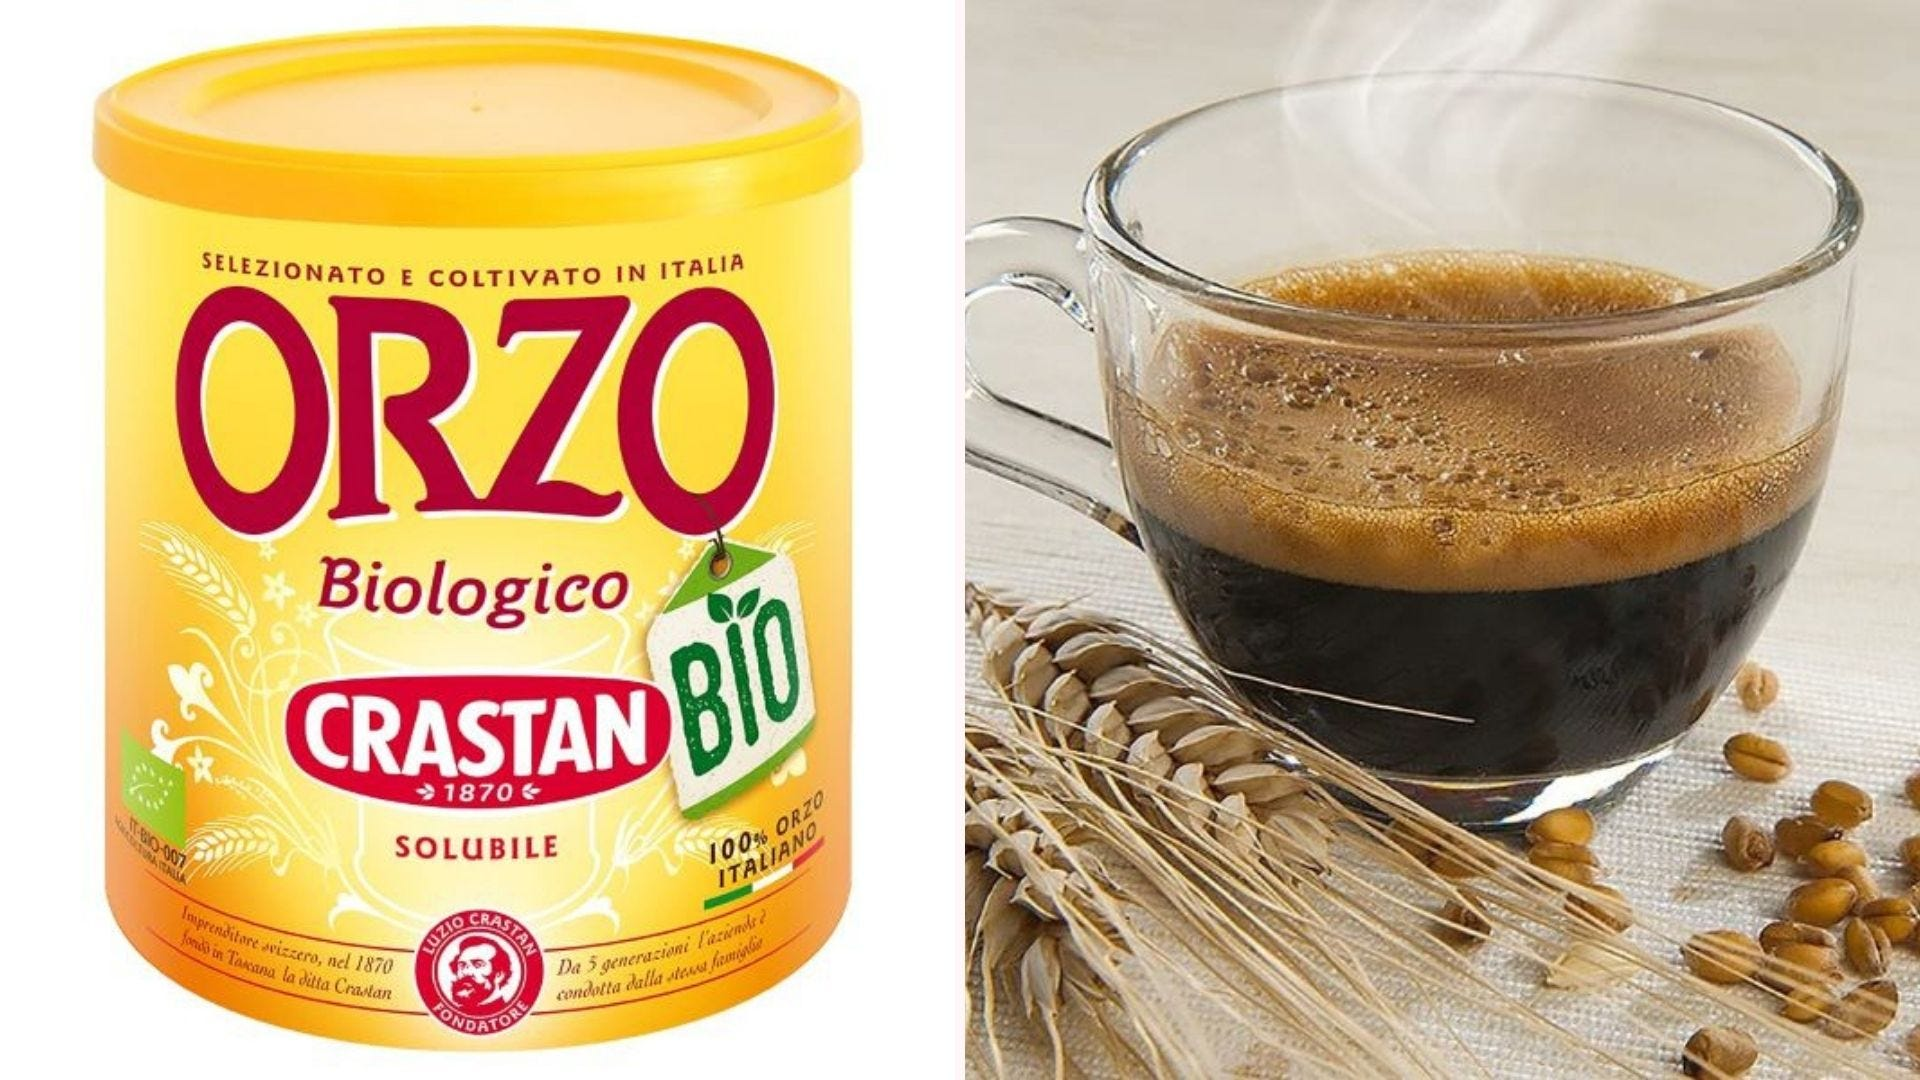 A container of Crastan Orzo and a glass mug of Orzo coffee surrounded by barley.